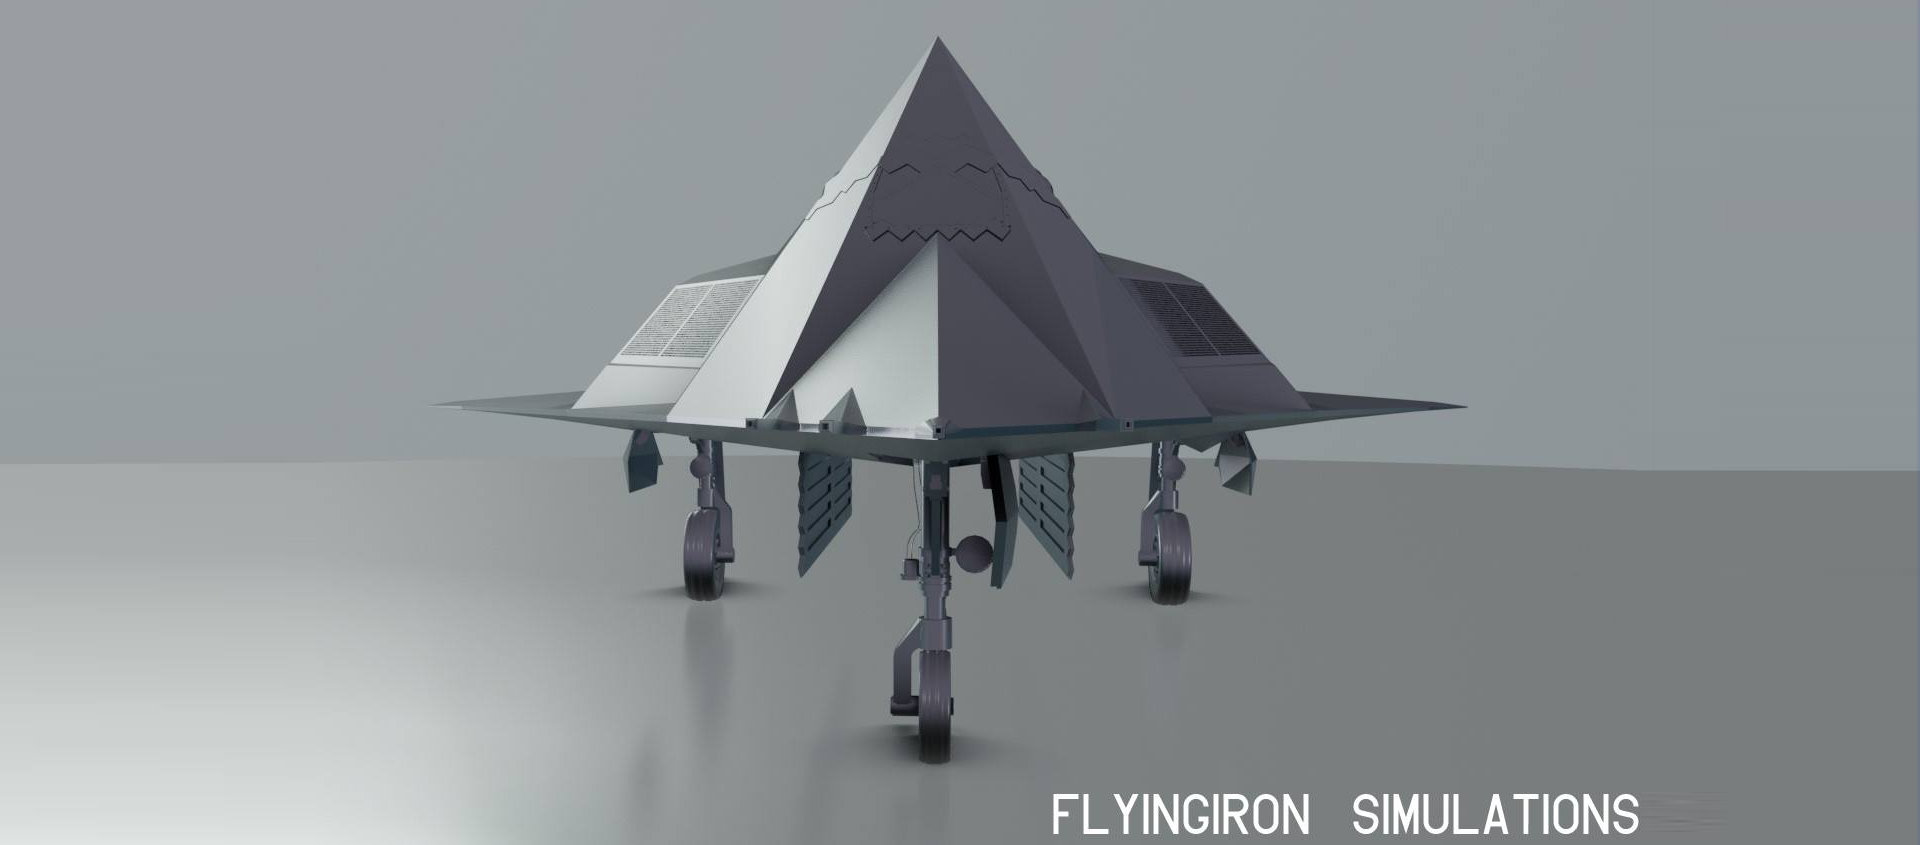 Unter dem Radar: FlyingIron baut F-117 Nighthawk! – flusinews.de